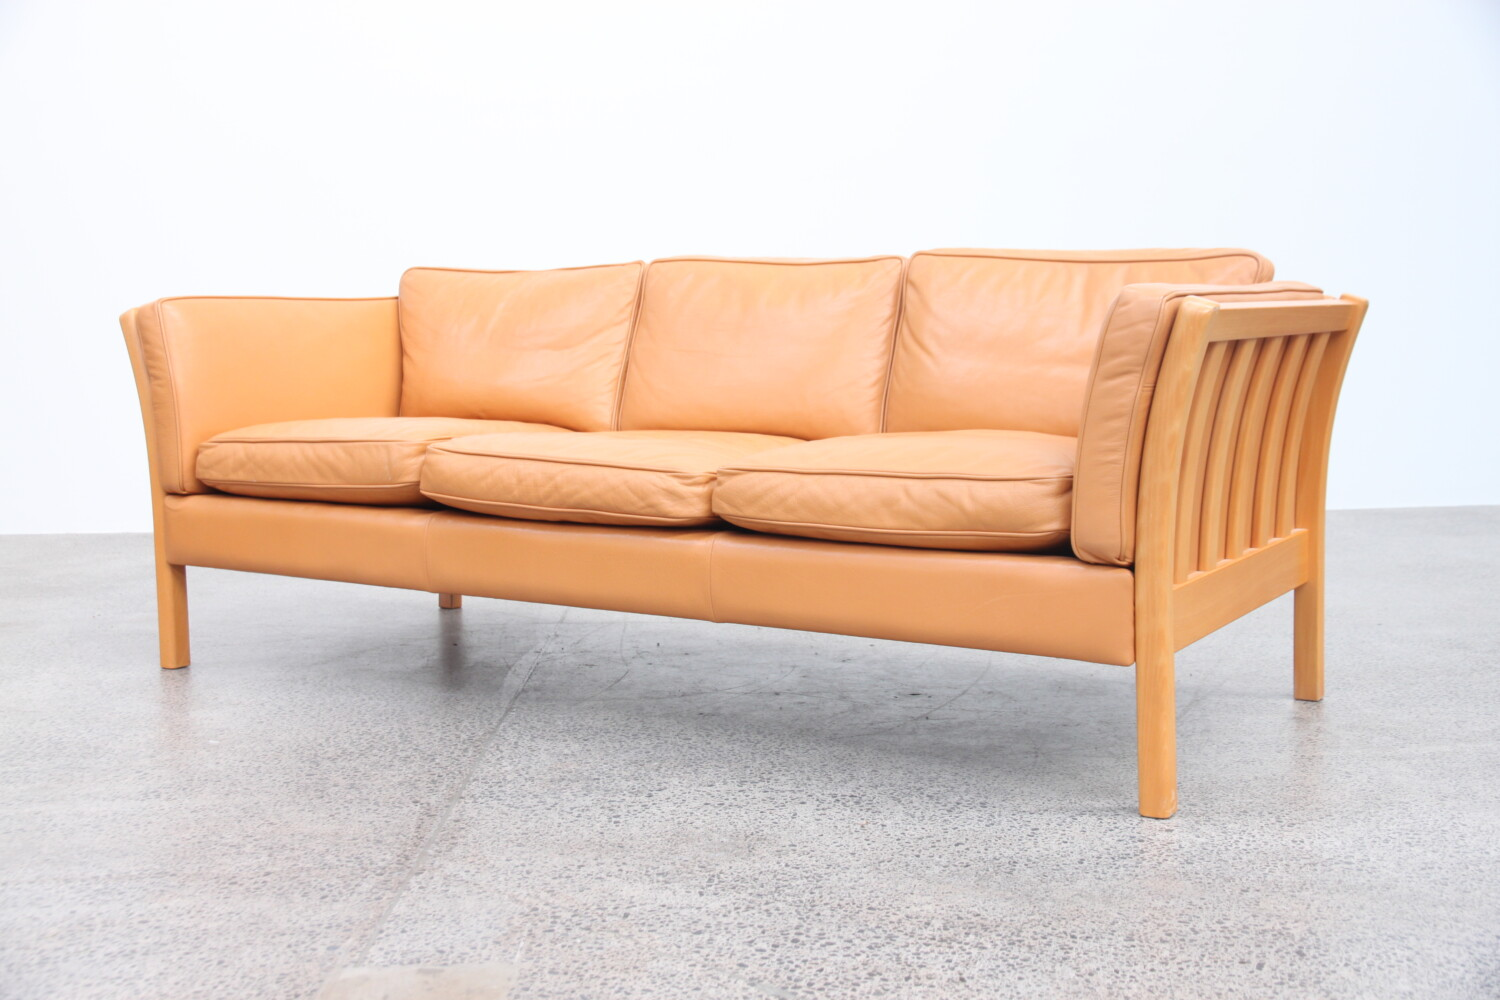 Pair of Tan Leather Sofas by Stouby